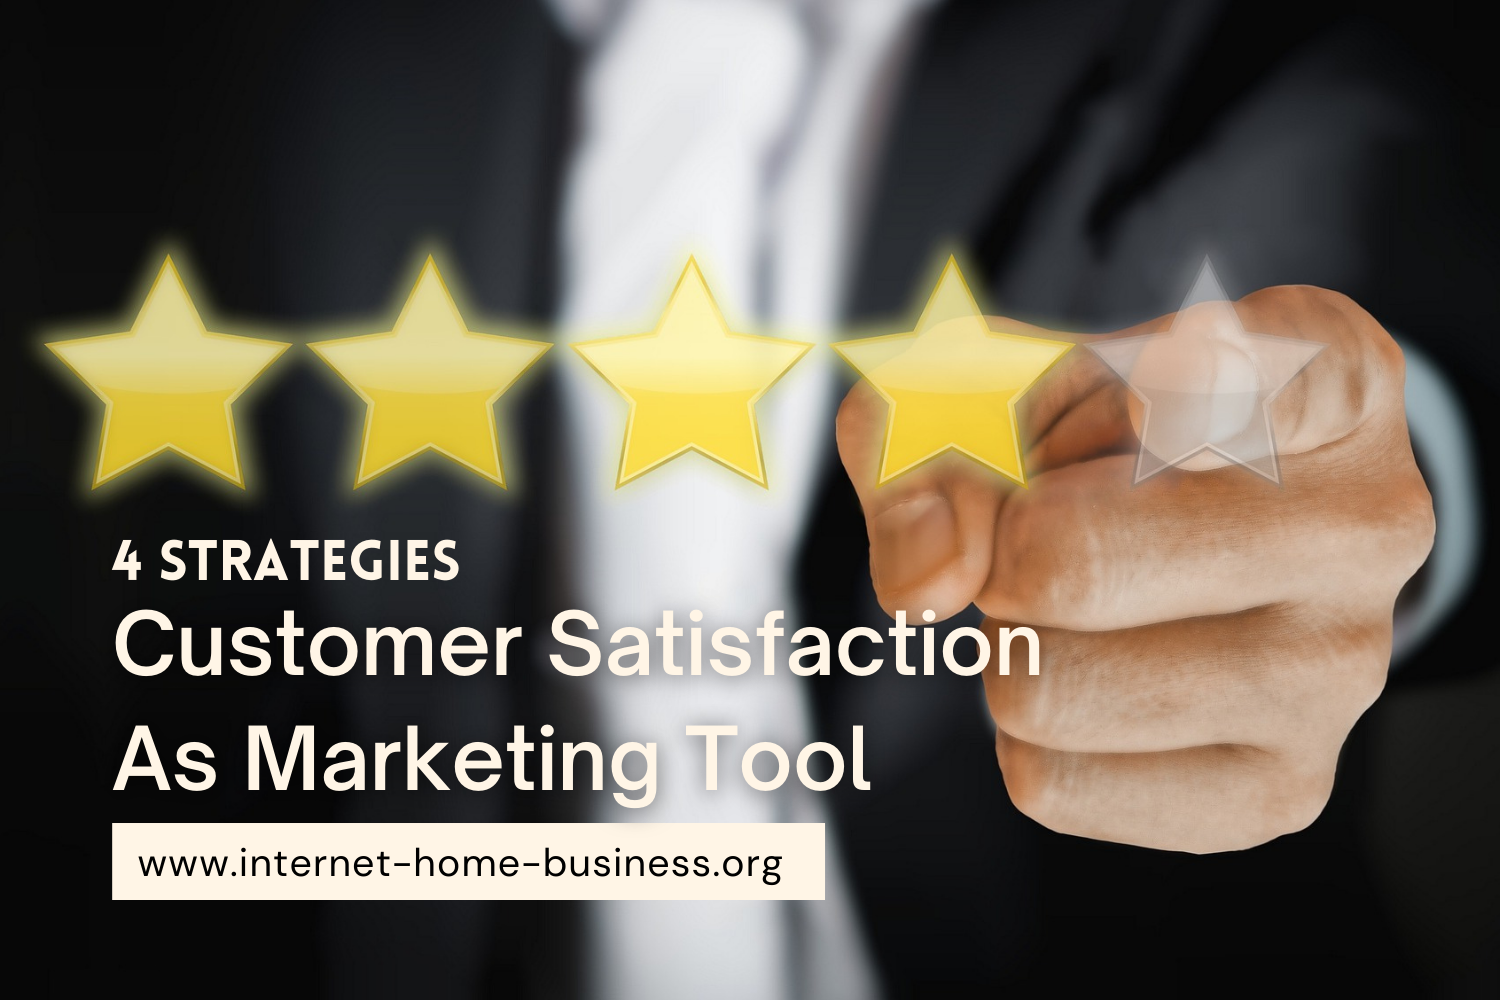 A five-star rating that can help you use customer satisfaction as a marketing tool to improve your business.